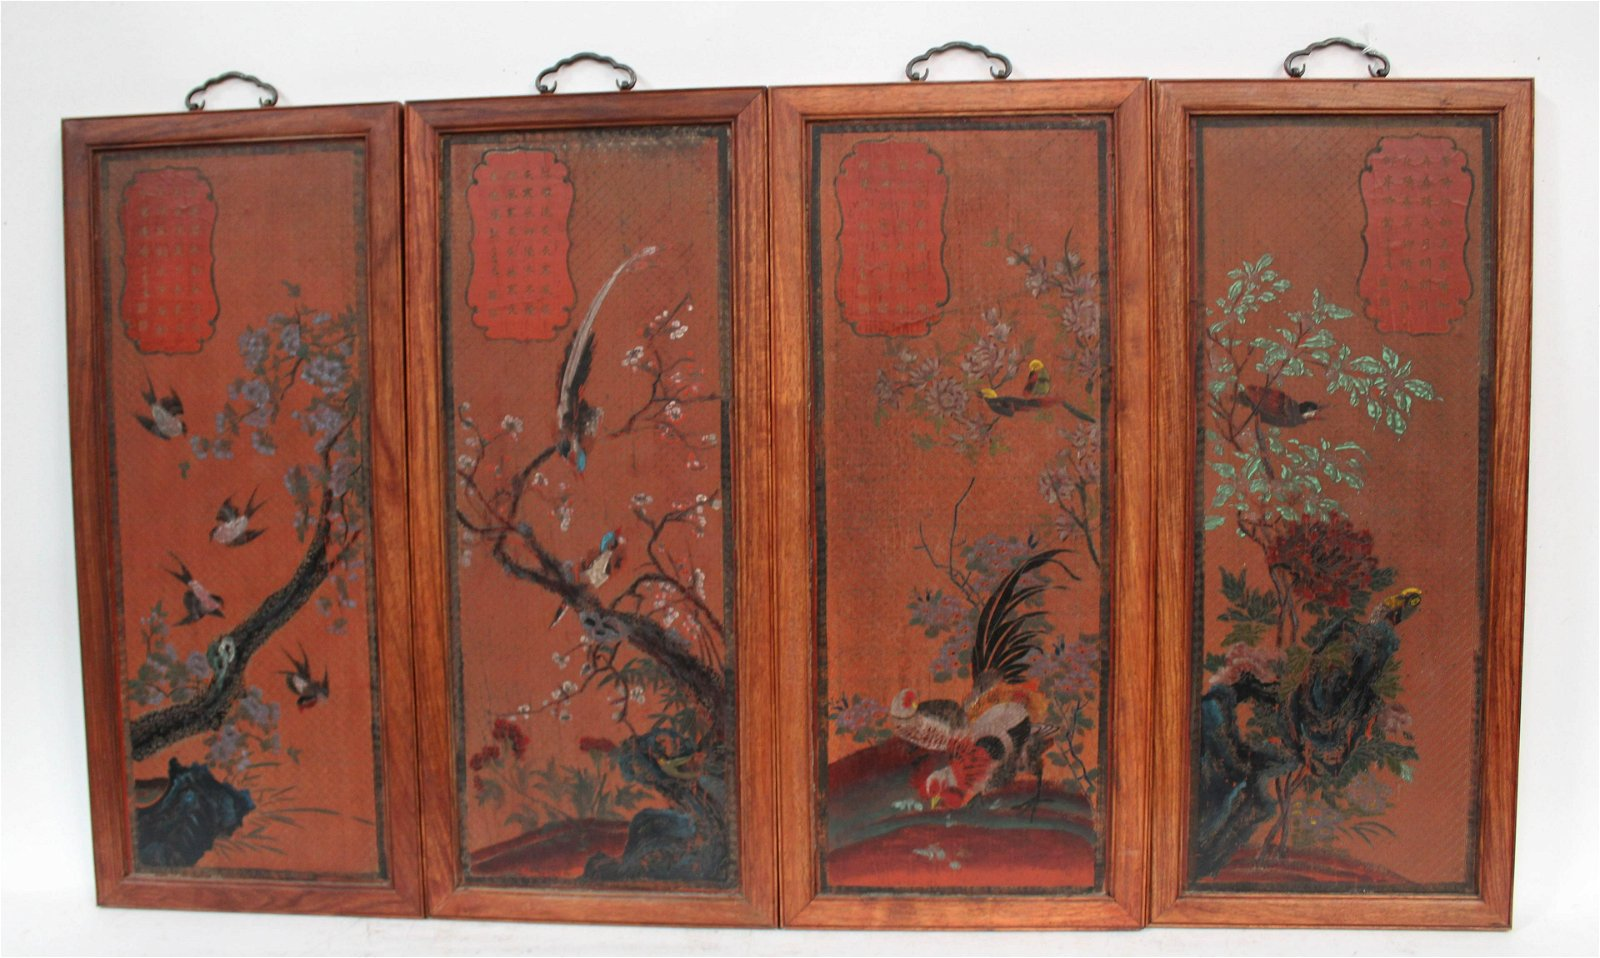 A Set of Four Hardwood Framed Double-Sided Lacquer